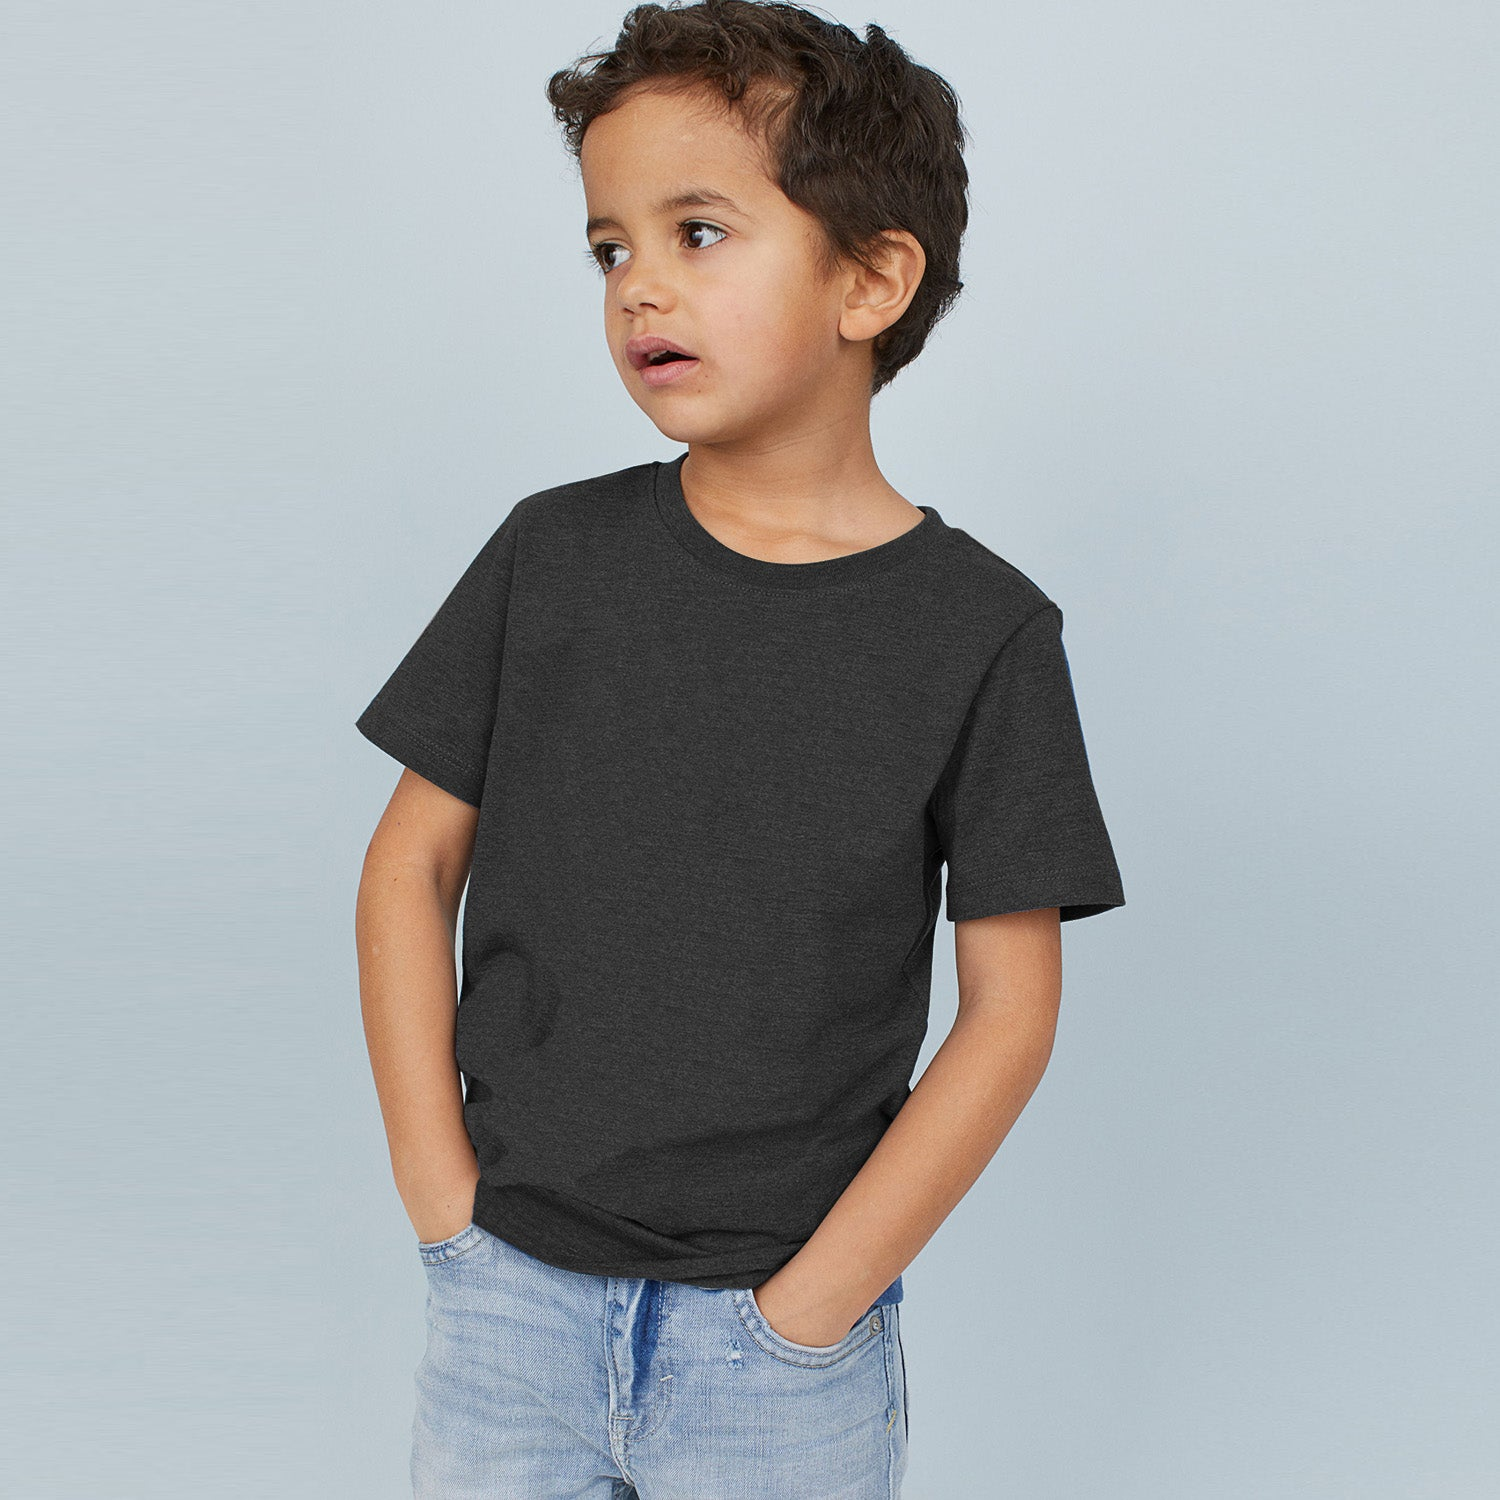 brandsego - Next Crew Neck Single Jersey Tee Shirt For Kids-Charcoal Melange-BE9036